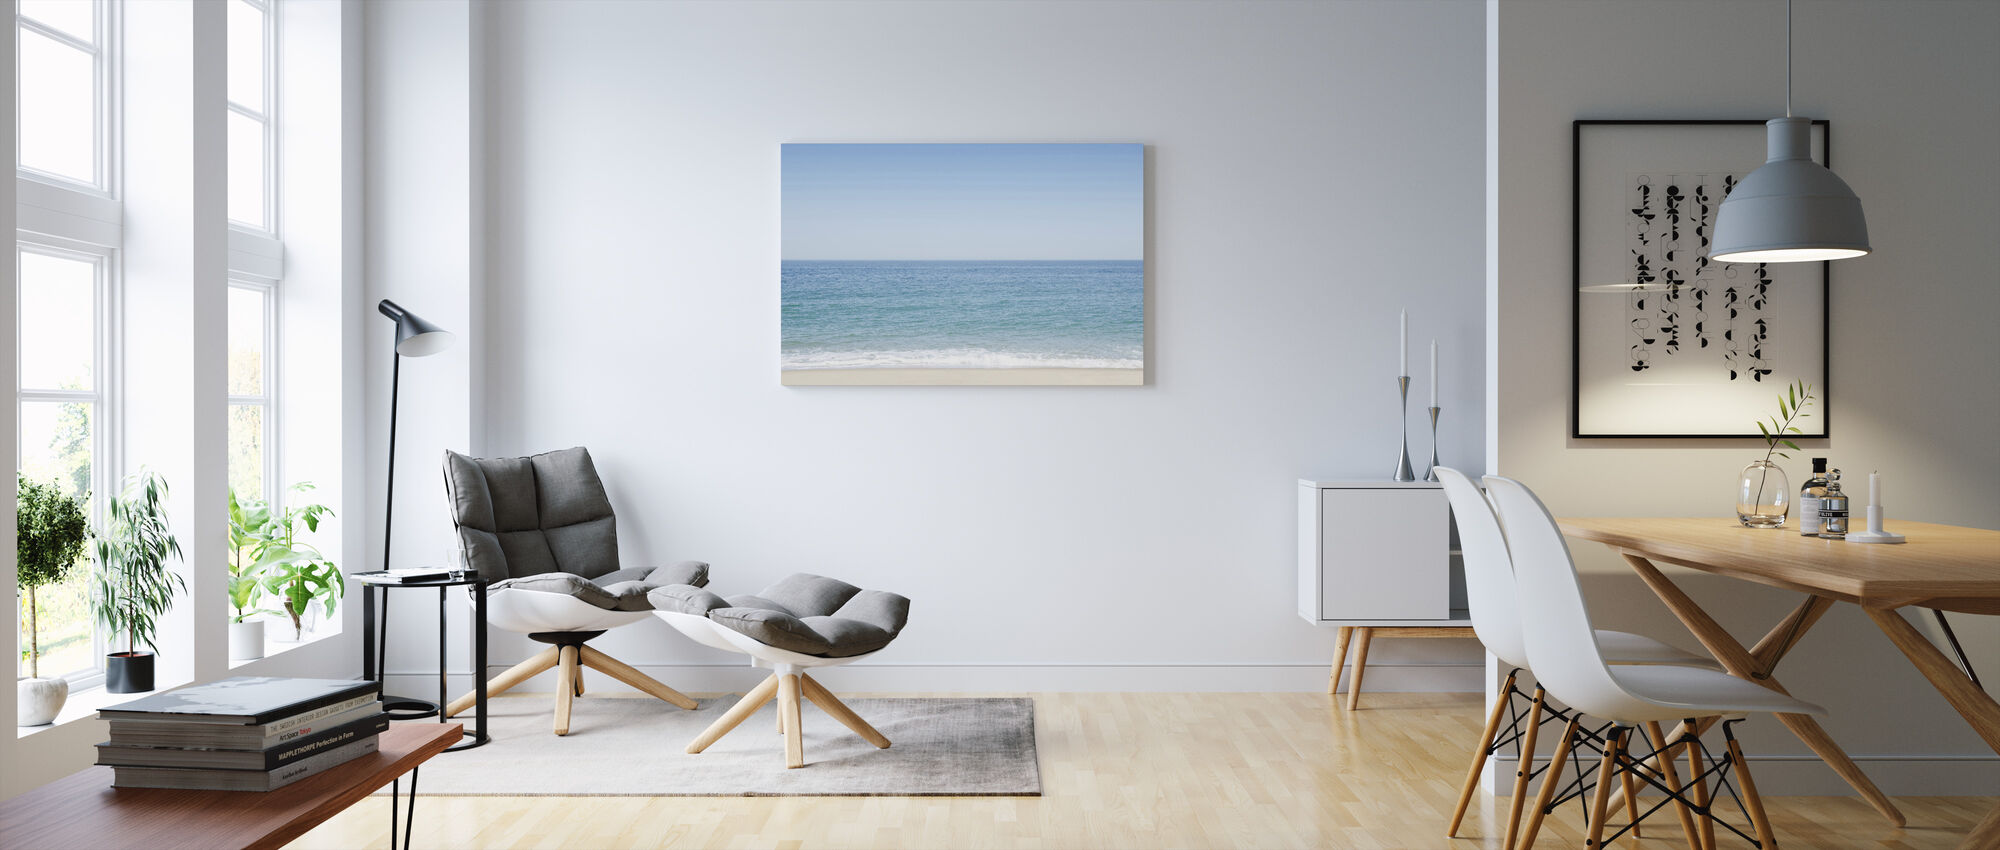 Tied to the Ocean - Canvas print - Living Room